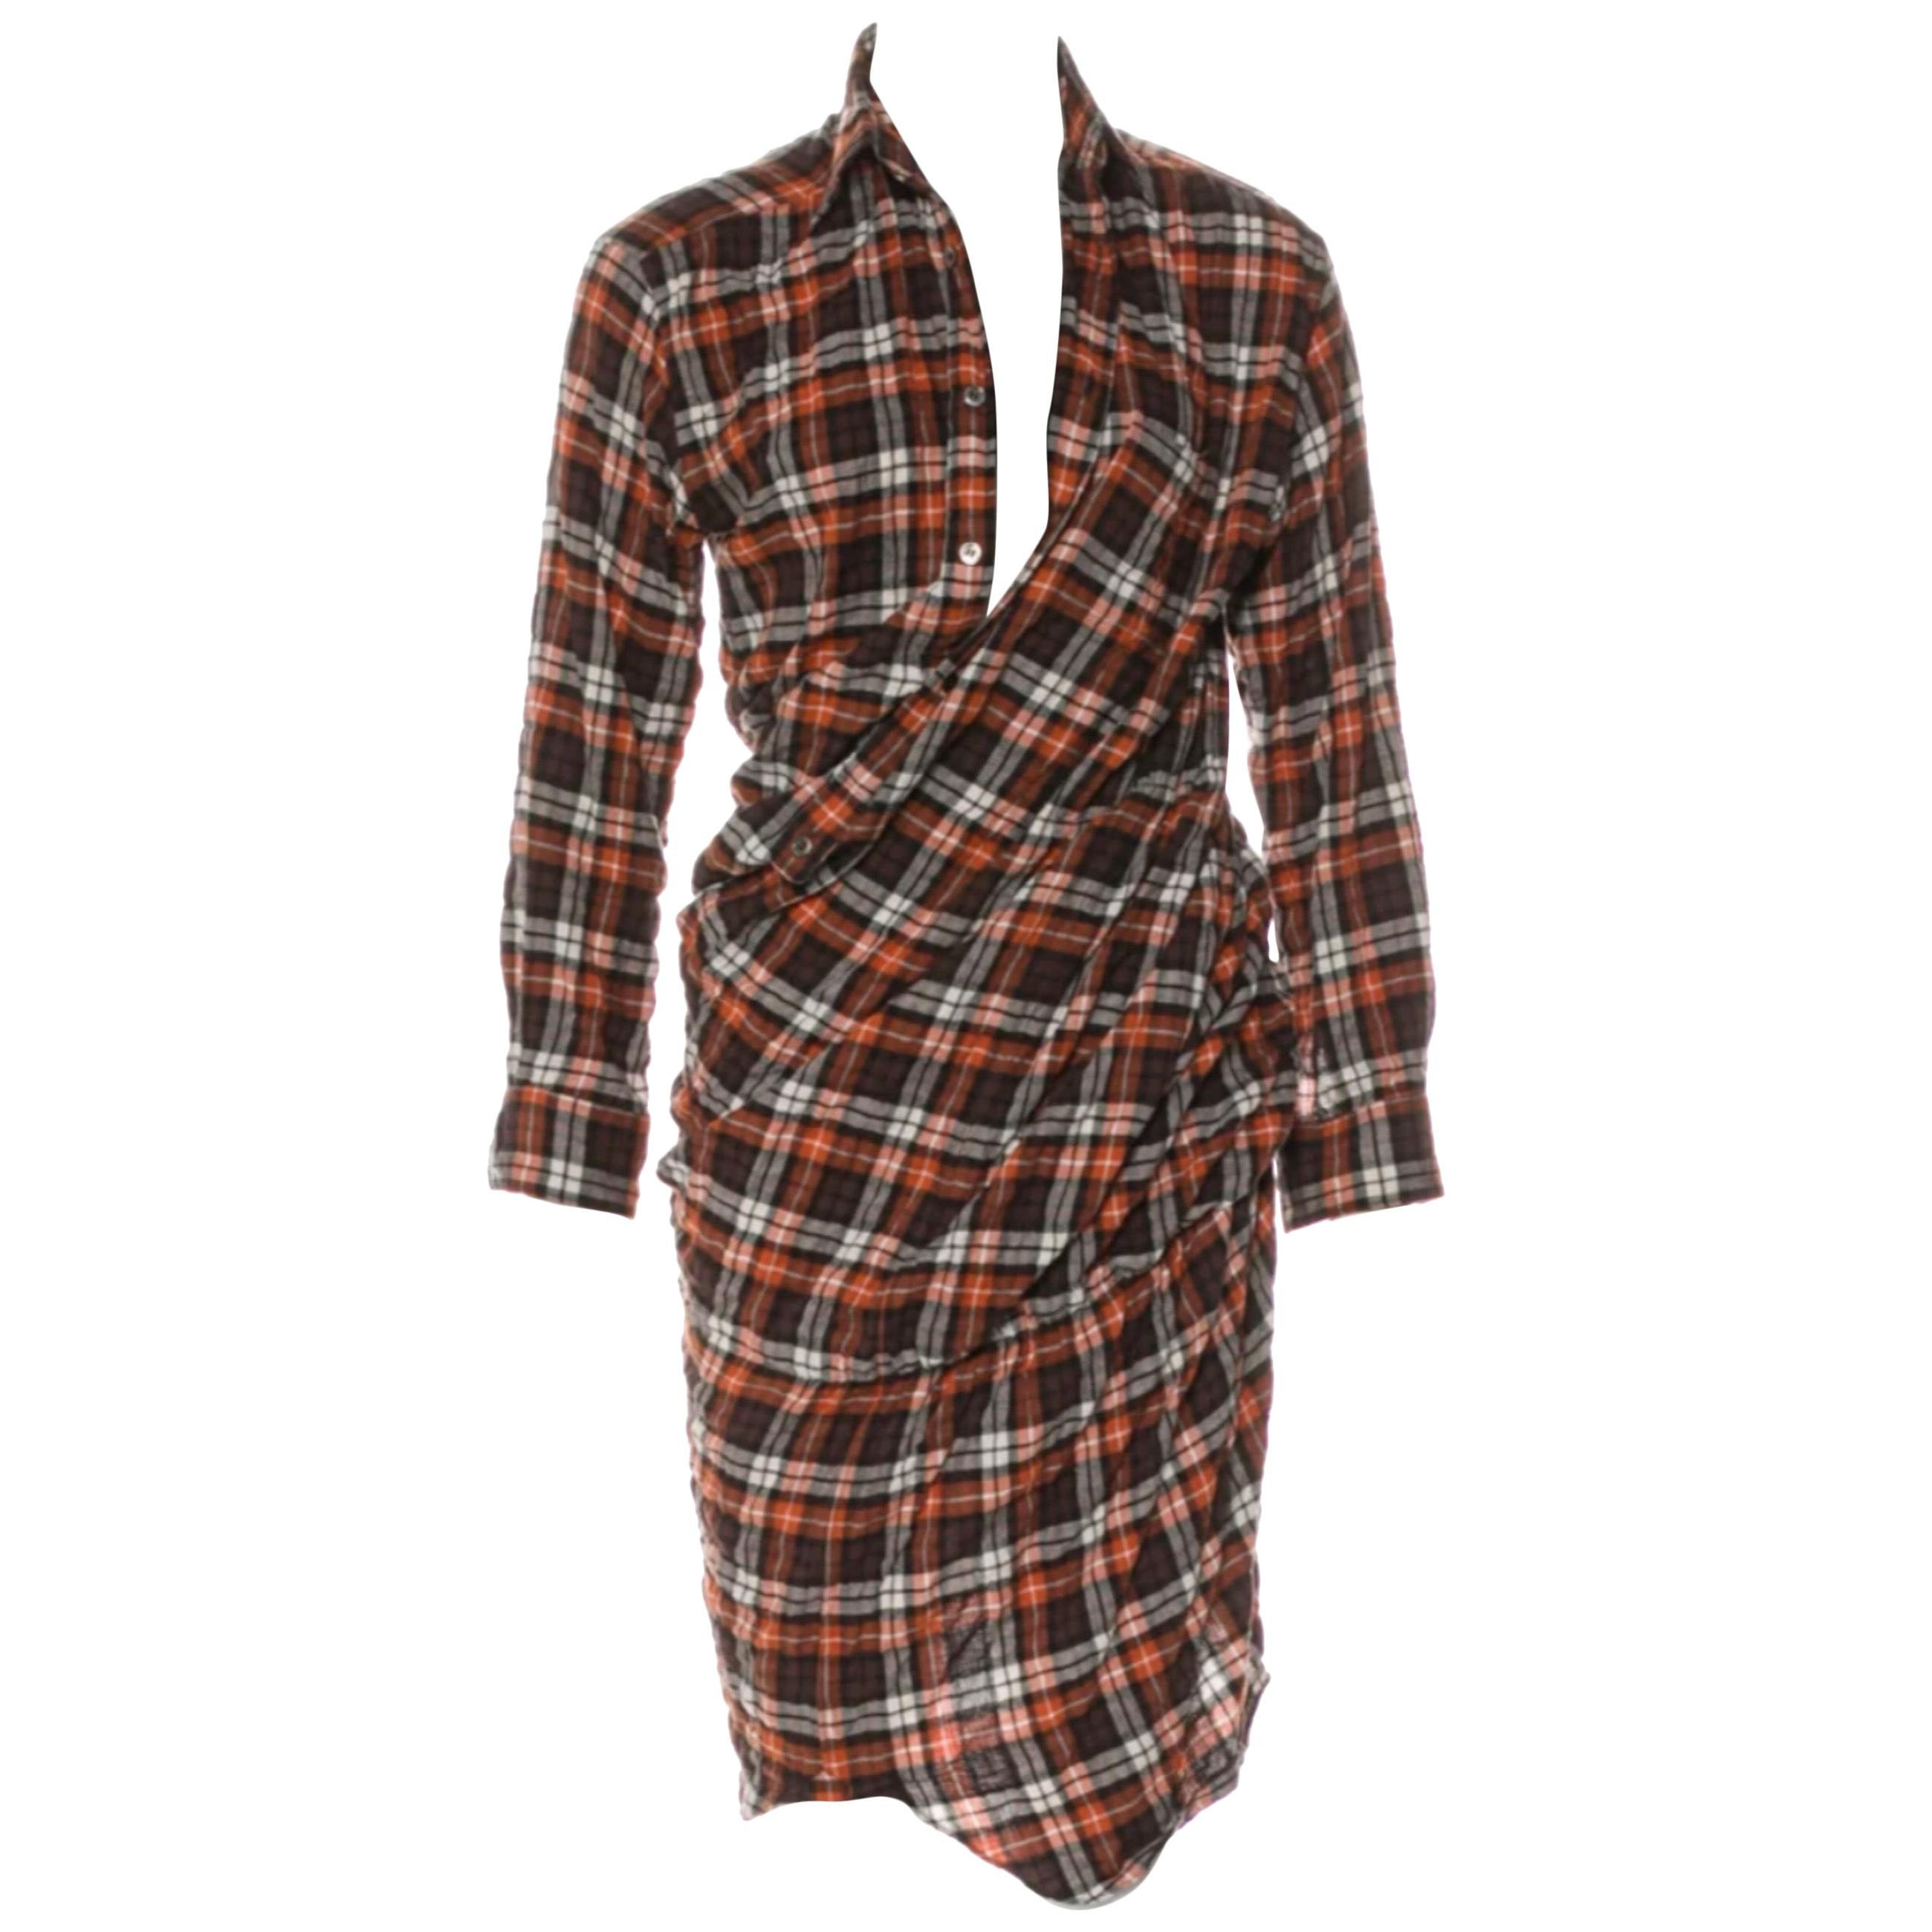 Junya Watanabe for Comme des Garcons Plaid Twisted Dress